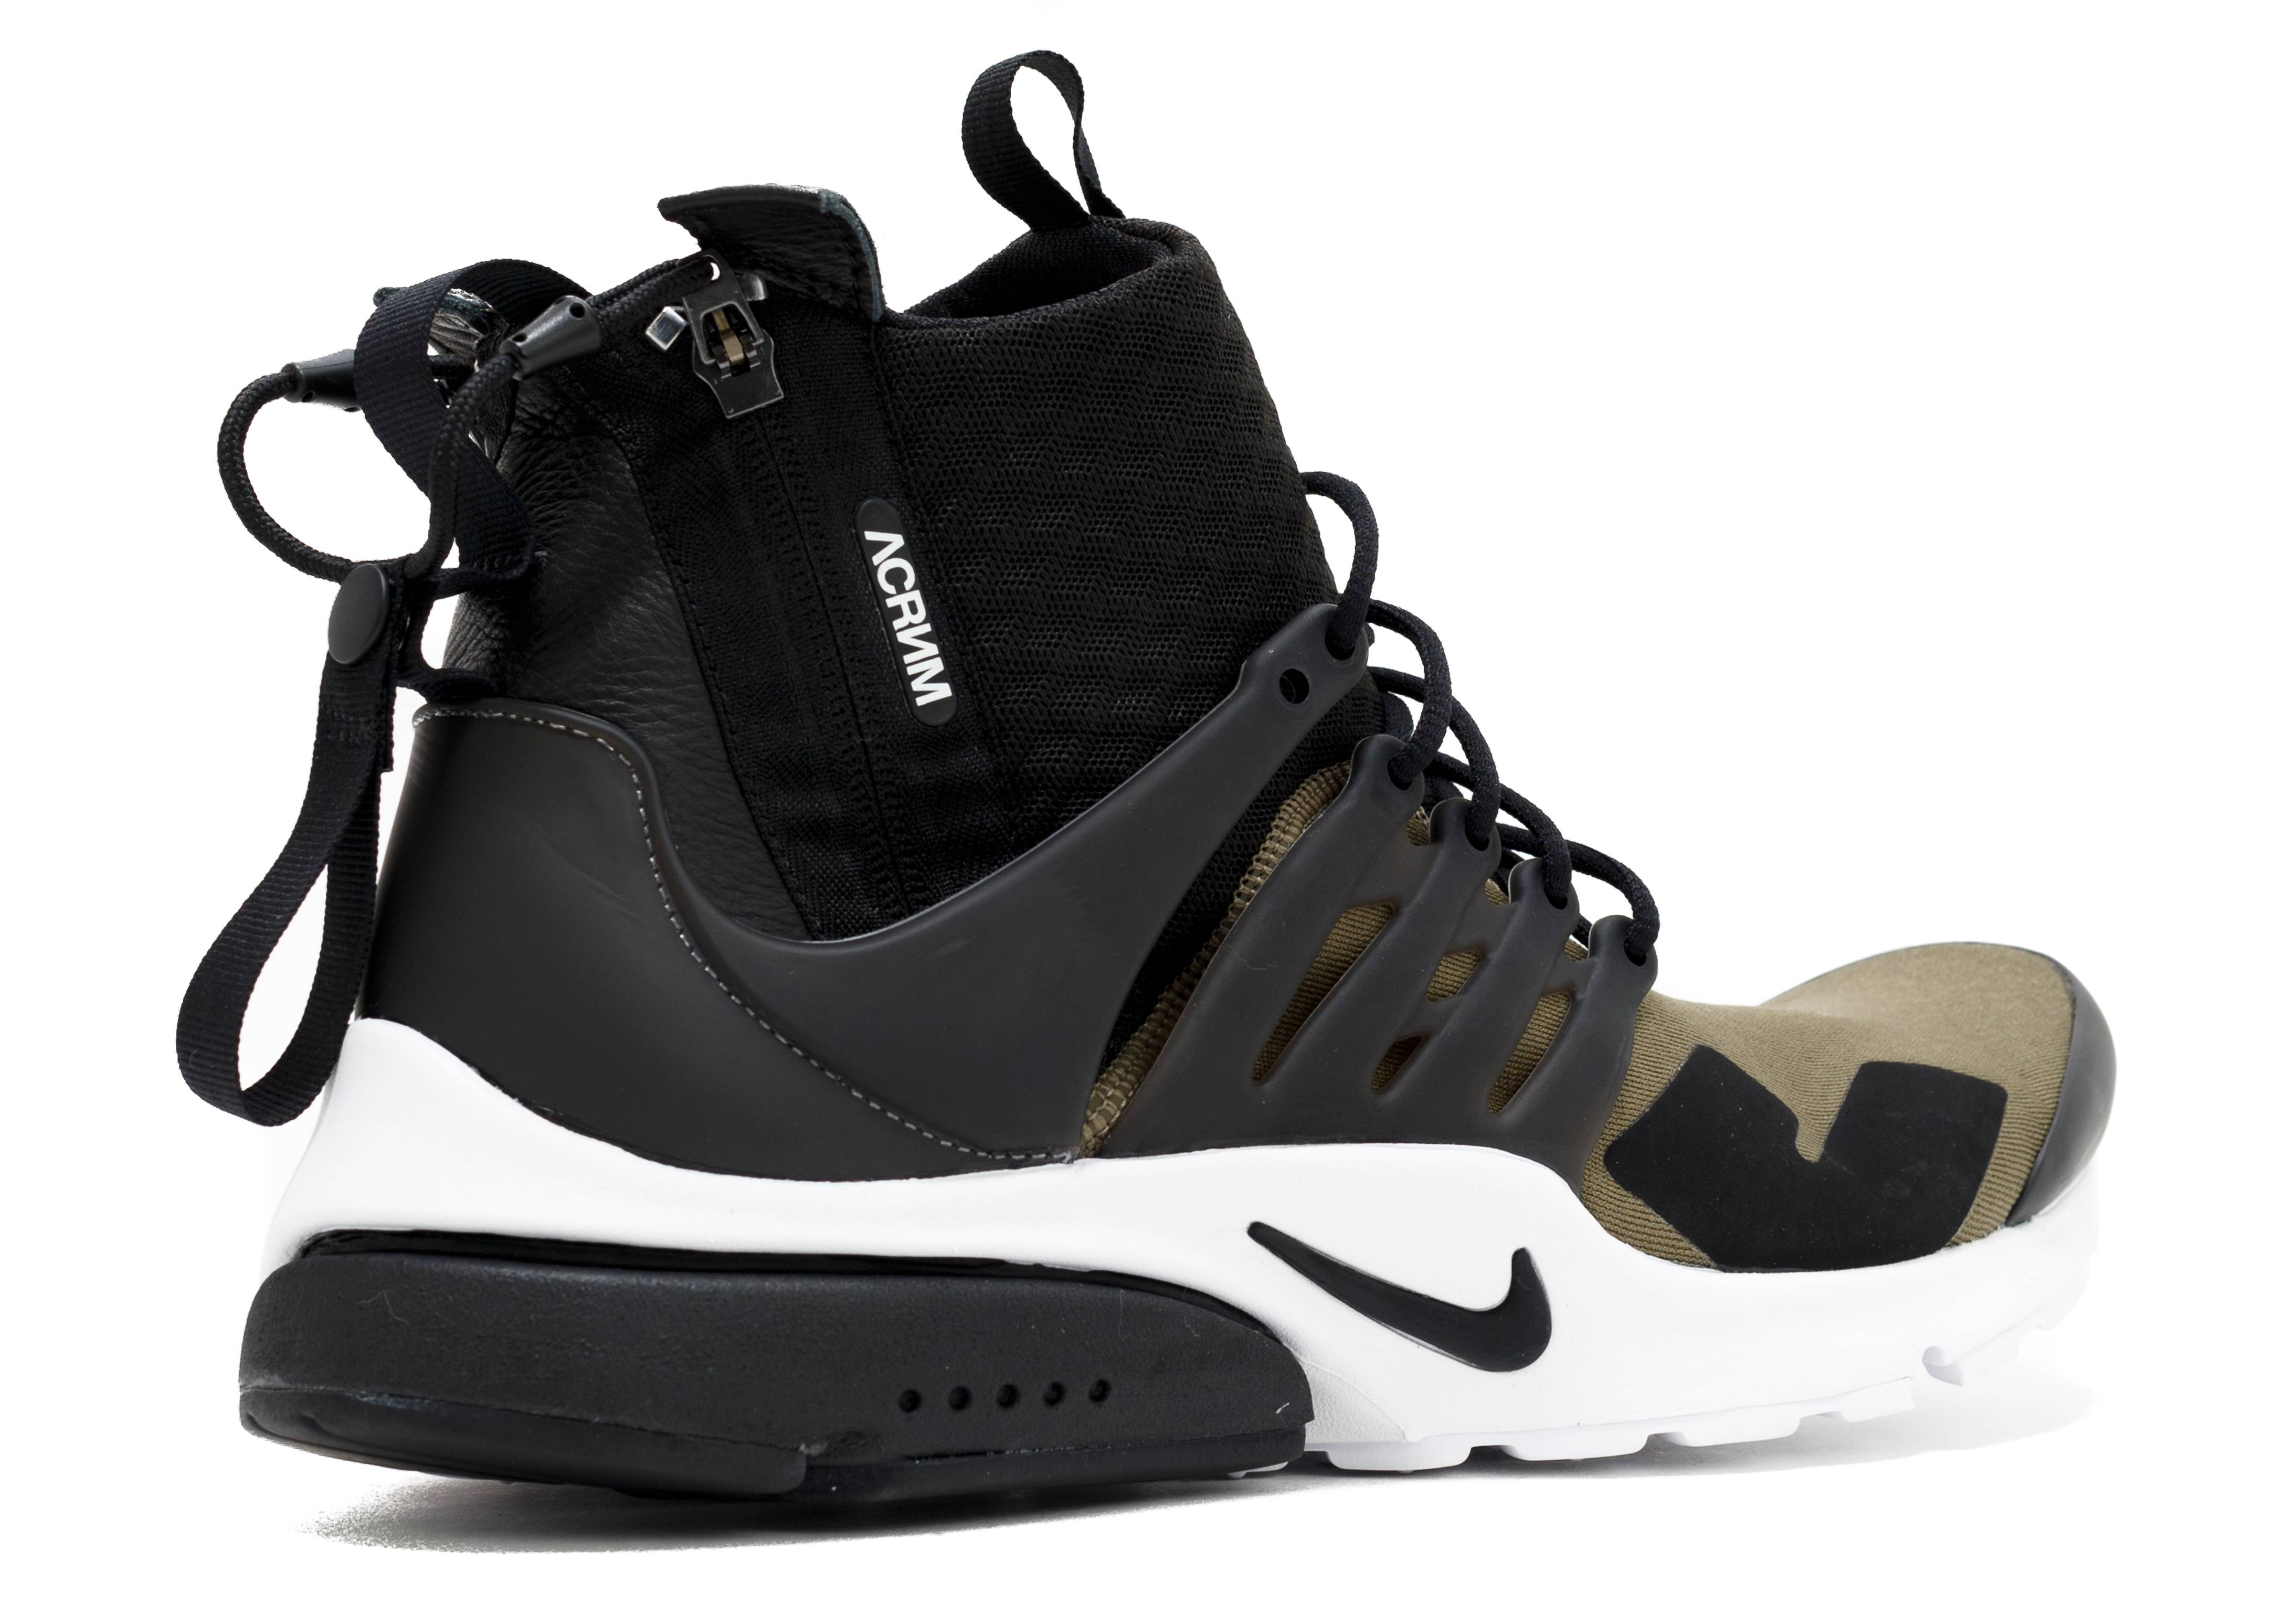 ba2ab8d59f71 ... new arrivals air presto mid acronym acronym nike 844672 200 med olive  black dust flight club